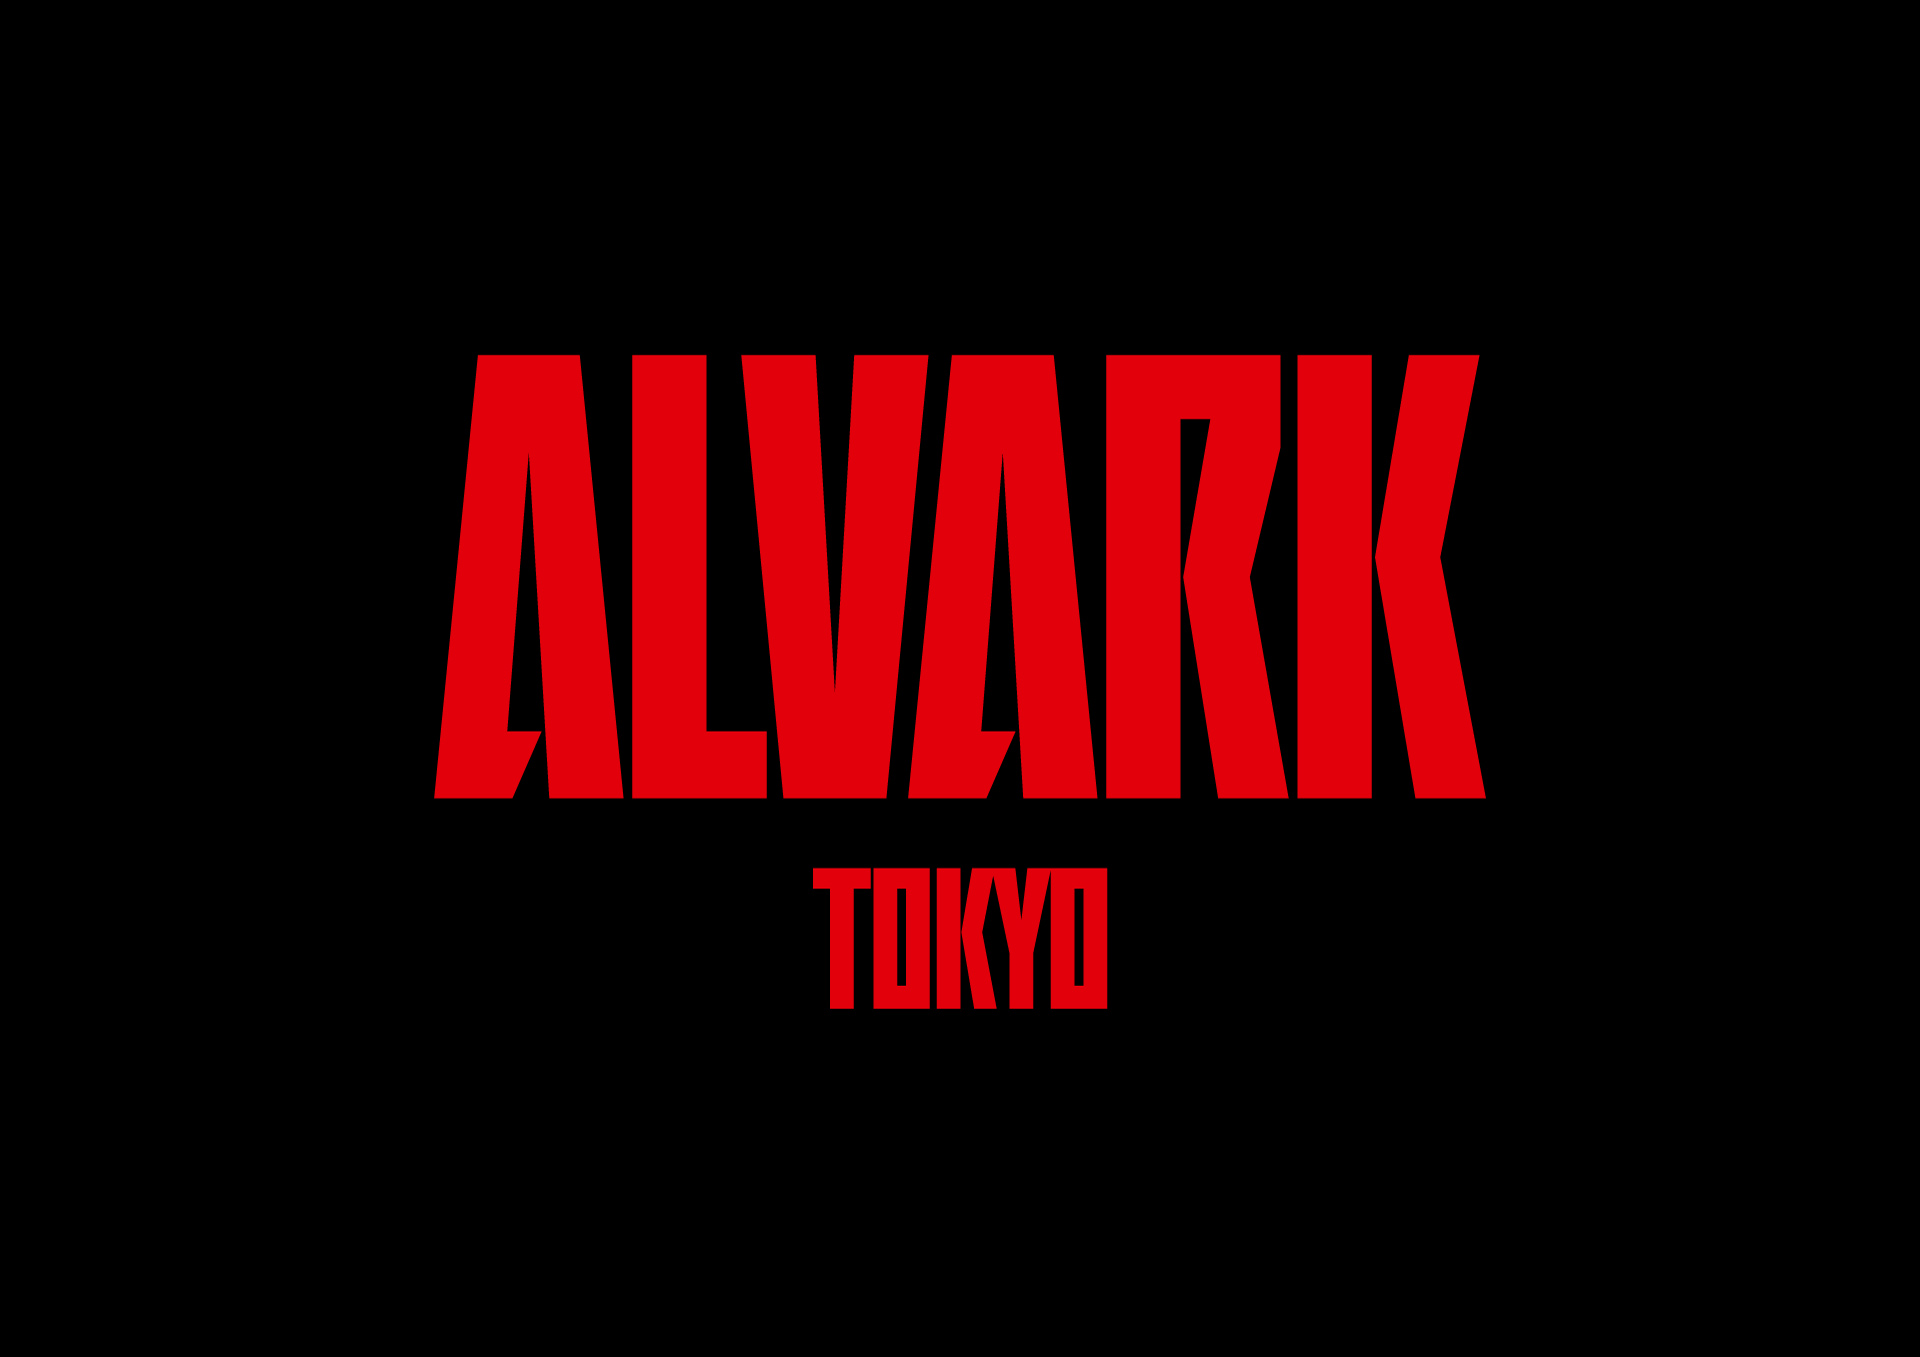 alvark_logo_up